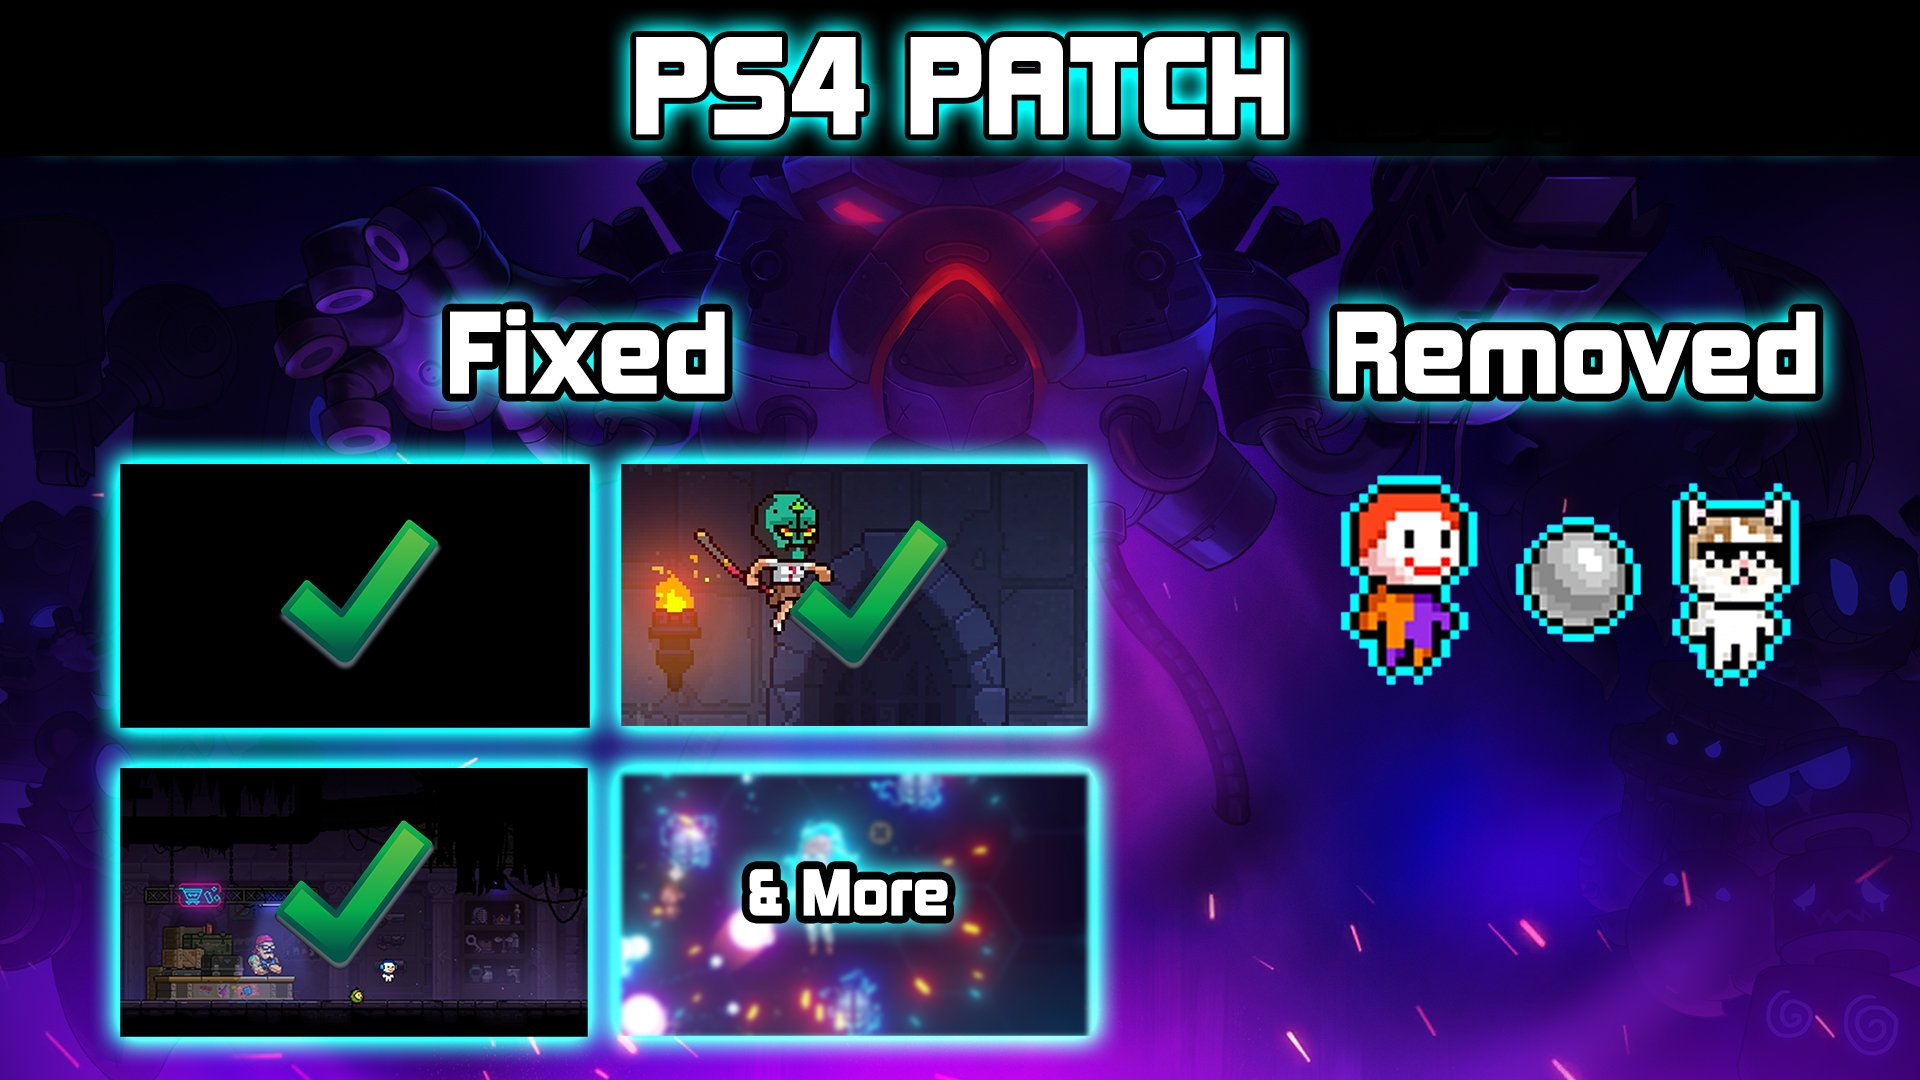 Neon Abyss On Twitter Abyssonauts The Playstation 4 Patch Is Now Live With Black Screen Fixes Problem Pet Removals And More Read More Https T Co 9maa0yn2fm We Continue To Finalise The Nintendo Switch Patch